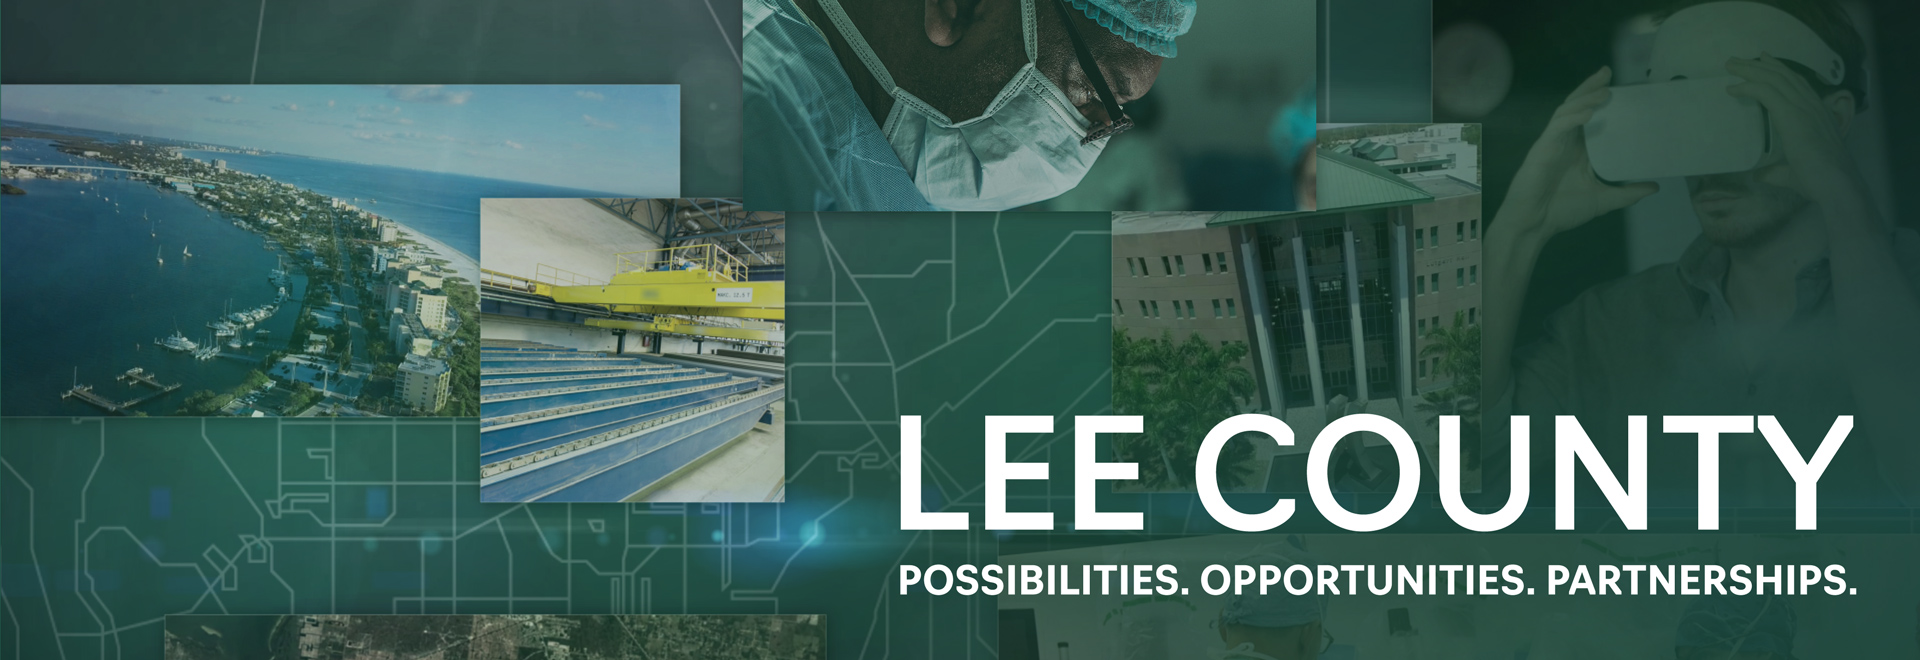 Lee County. Possibilities. Opportunities. Partnerships